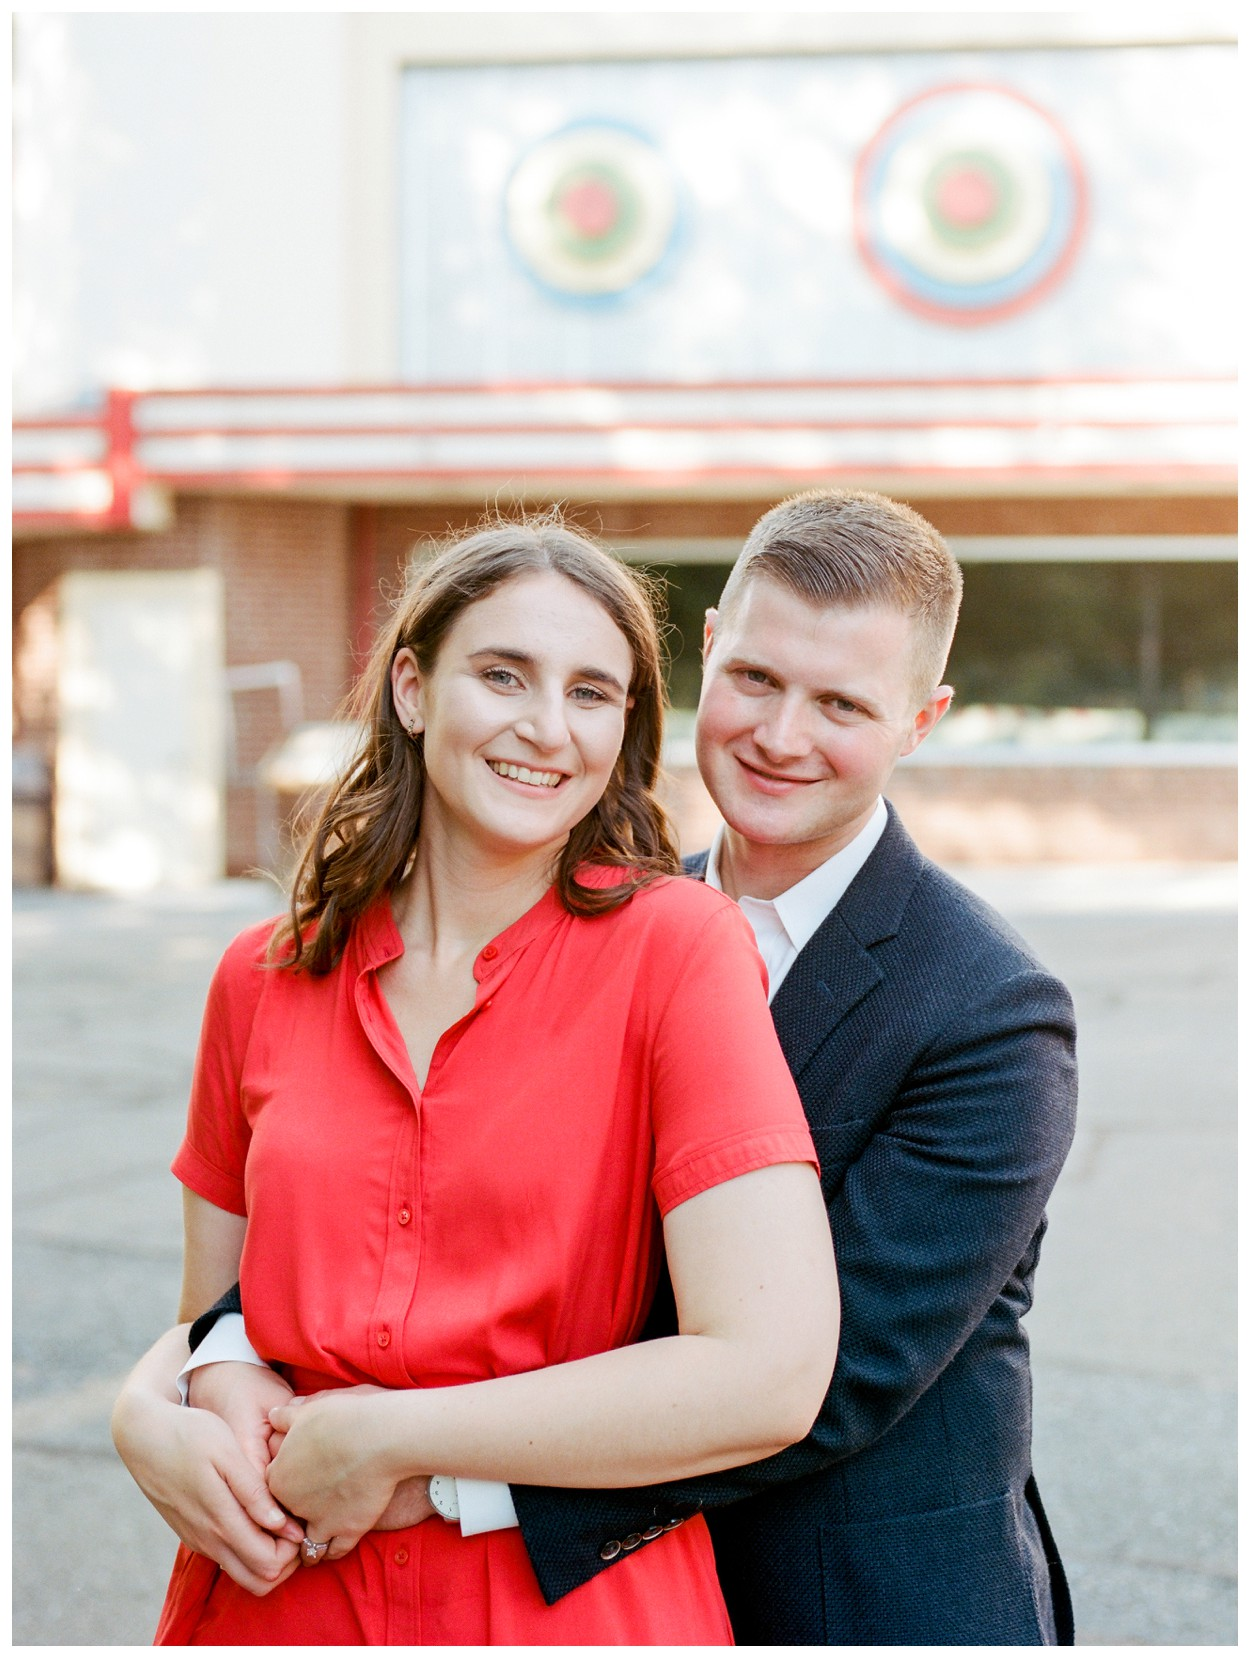 Summer engagement session at Glen Echo Park Maryland by Washington DC fine art wedding photographer Lissa Ryan Photography